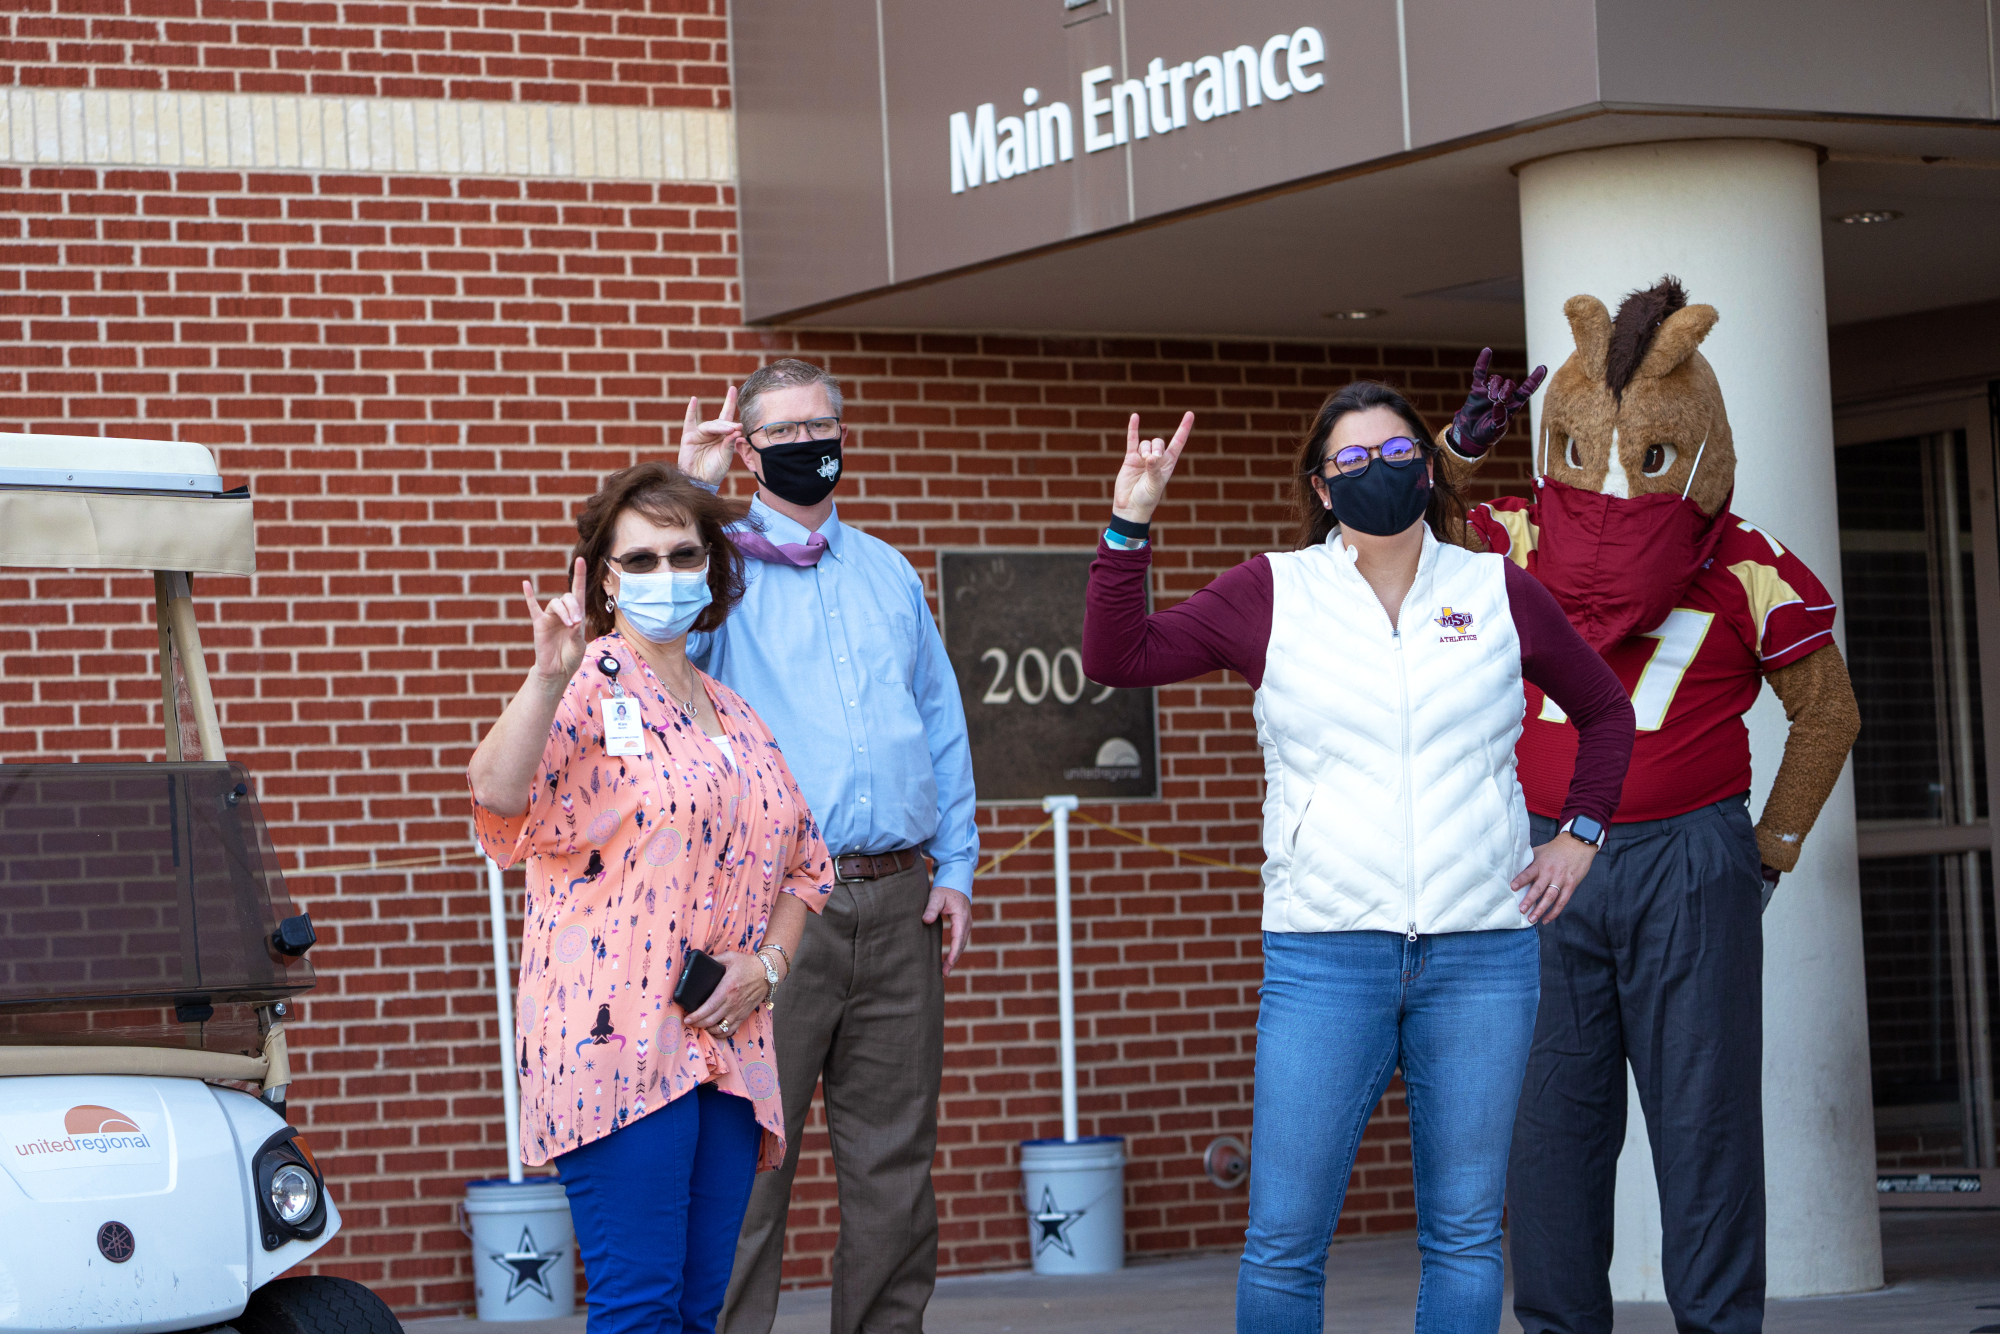 Kim Maddin, left, of United Regional accepted the donation of masks from Dr. David Carlston, Reagan Foster, and Maverick.